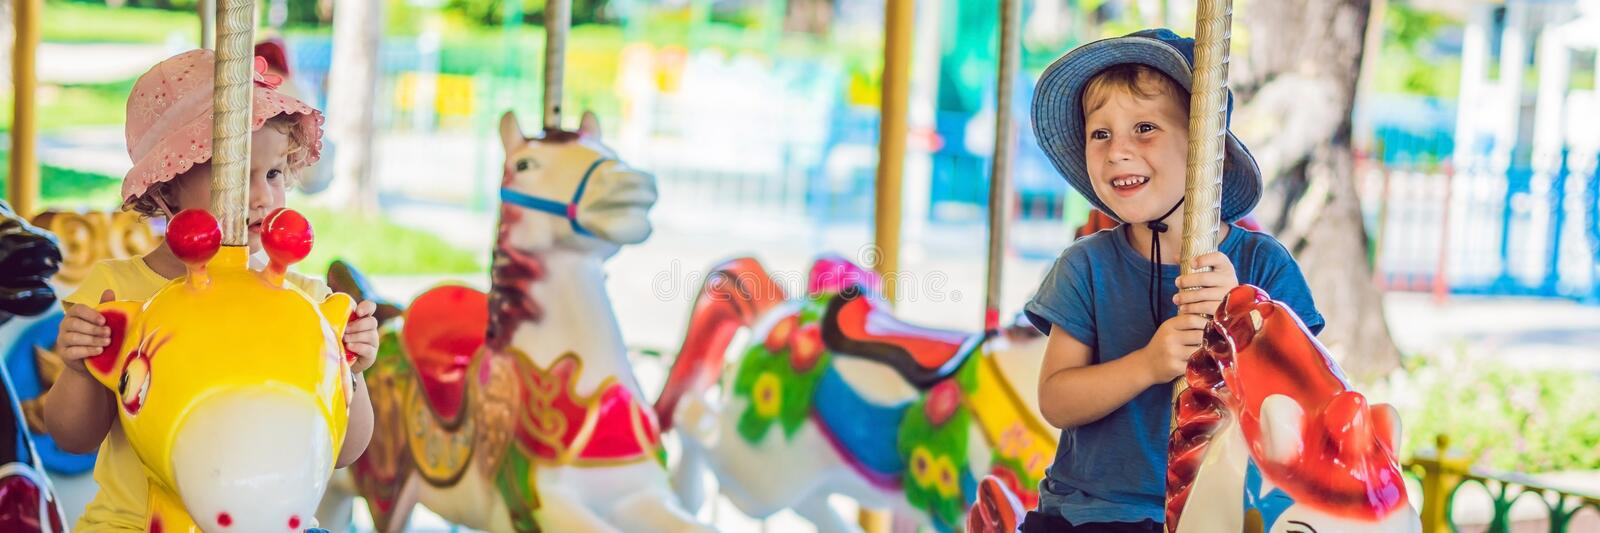 Cute little boy and girl enjoying in funfair and riding on colorful carousel house BANNER, long format stock photo